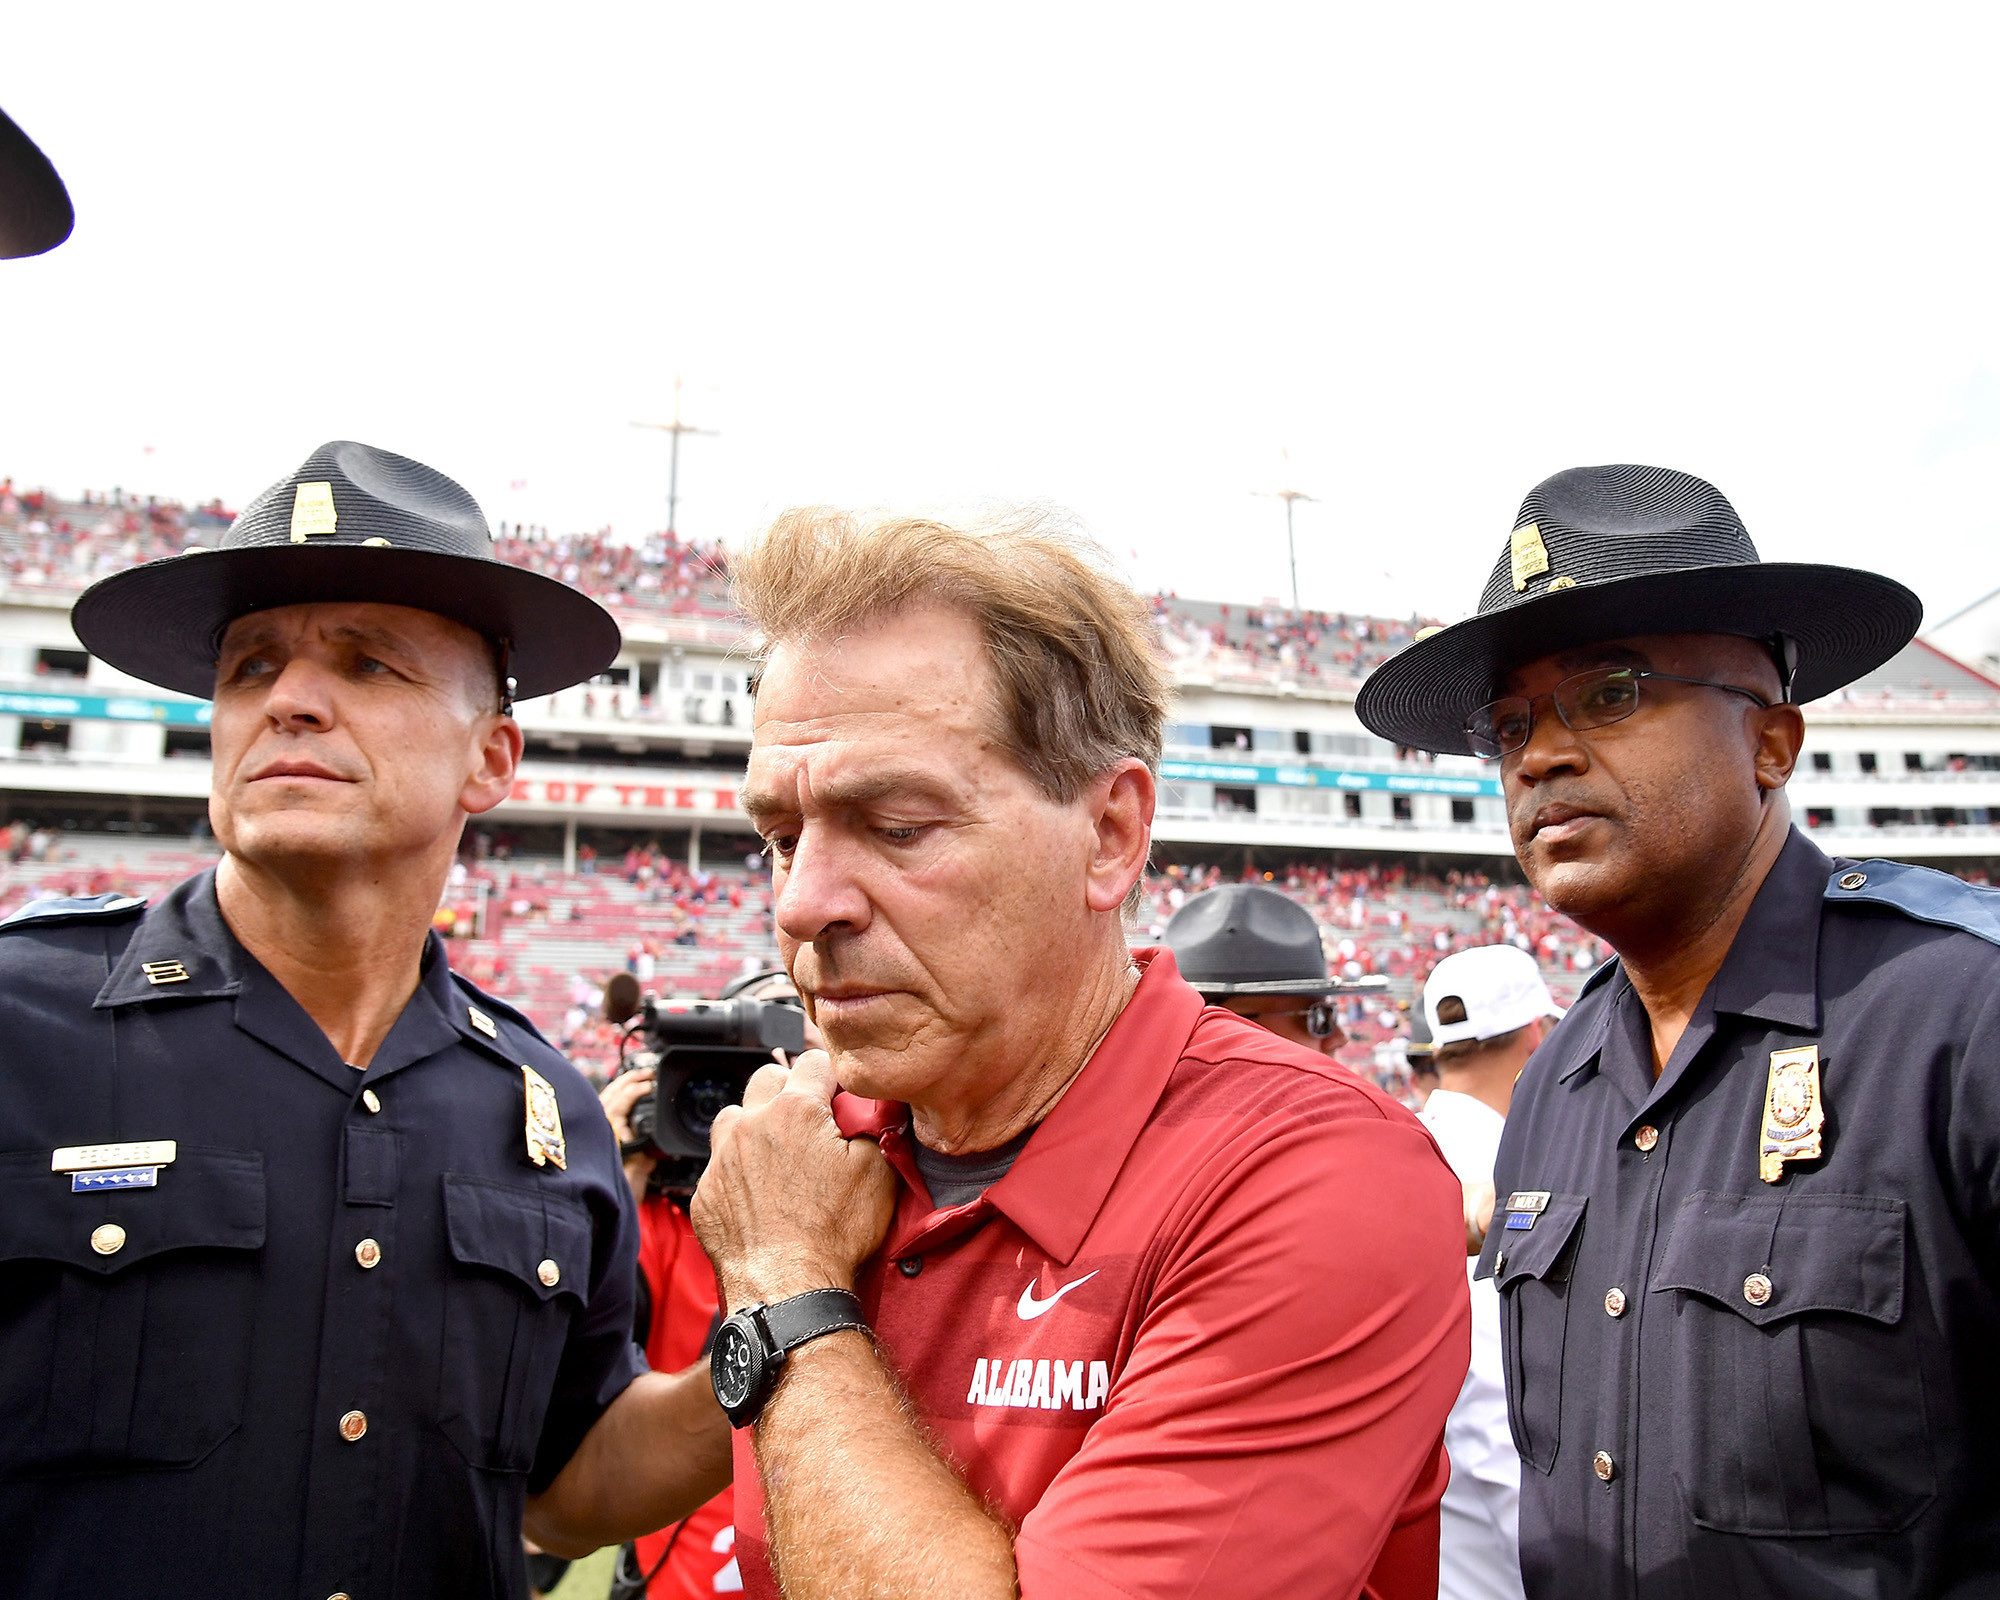 Alabama Crimson Tide head coach Nick Saban leaves the field following the Tide's 65-31 win over the Arkansas Razorbacks at Razorback Stadium on Oct. 6, 2018, in Fayetteville, Ark. (Photo by Lee Walls)